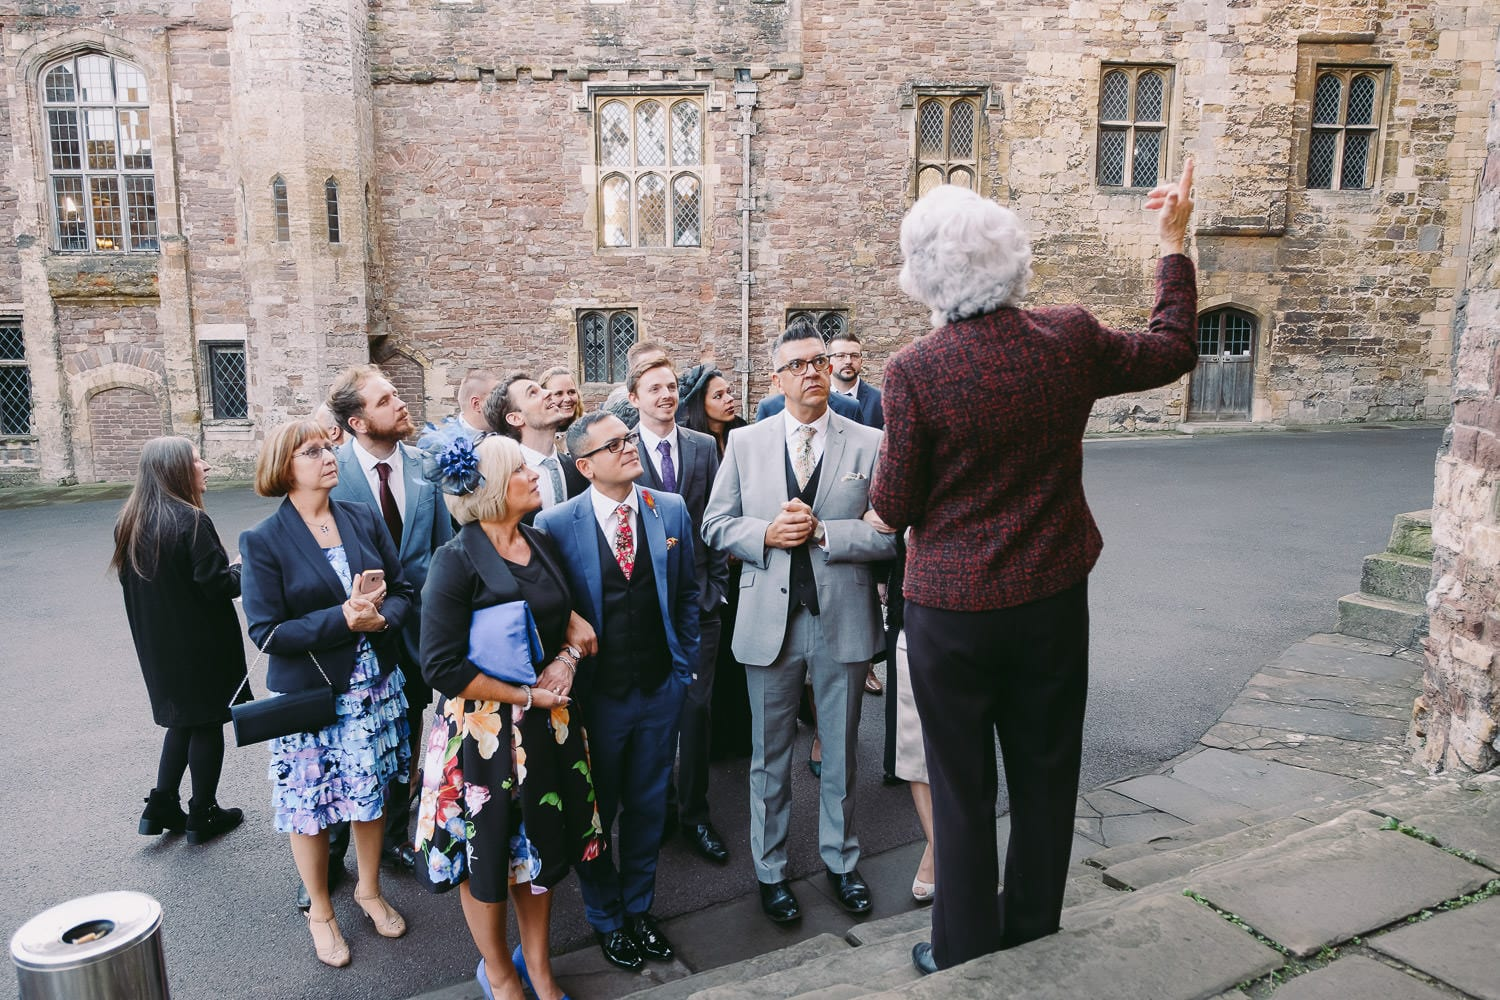 The guests take a tour of the castle